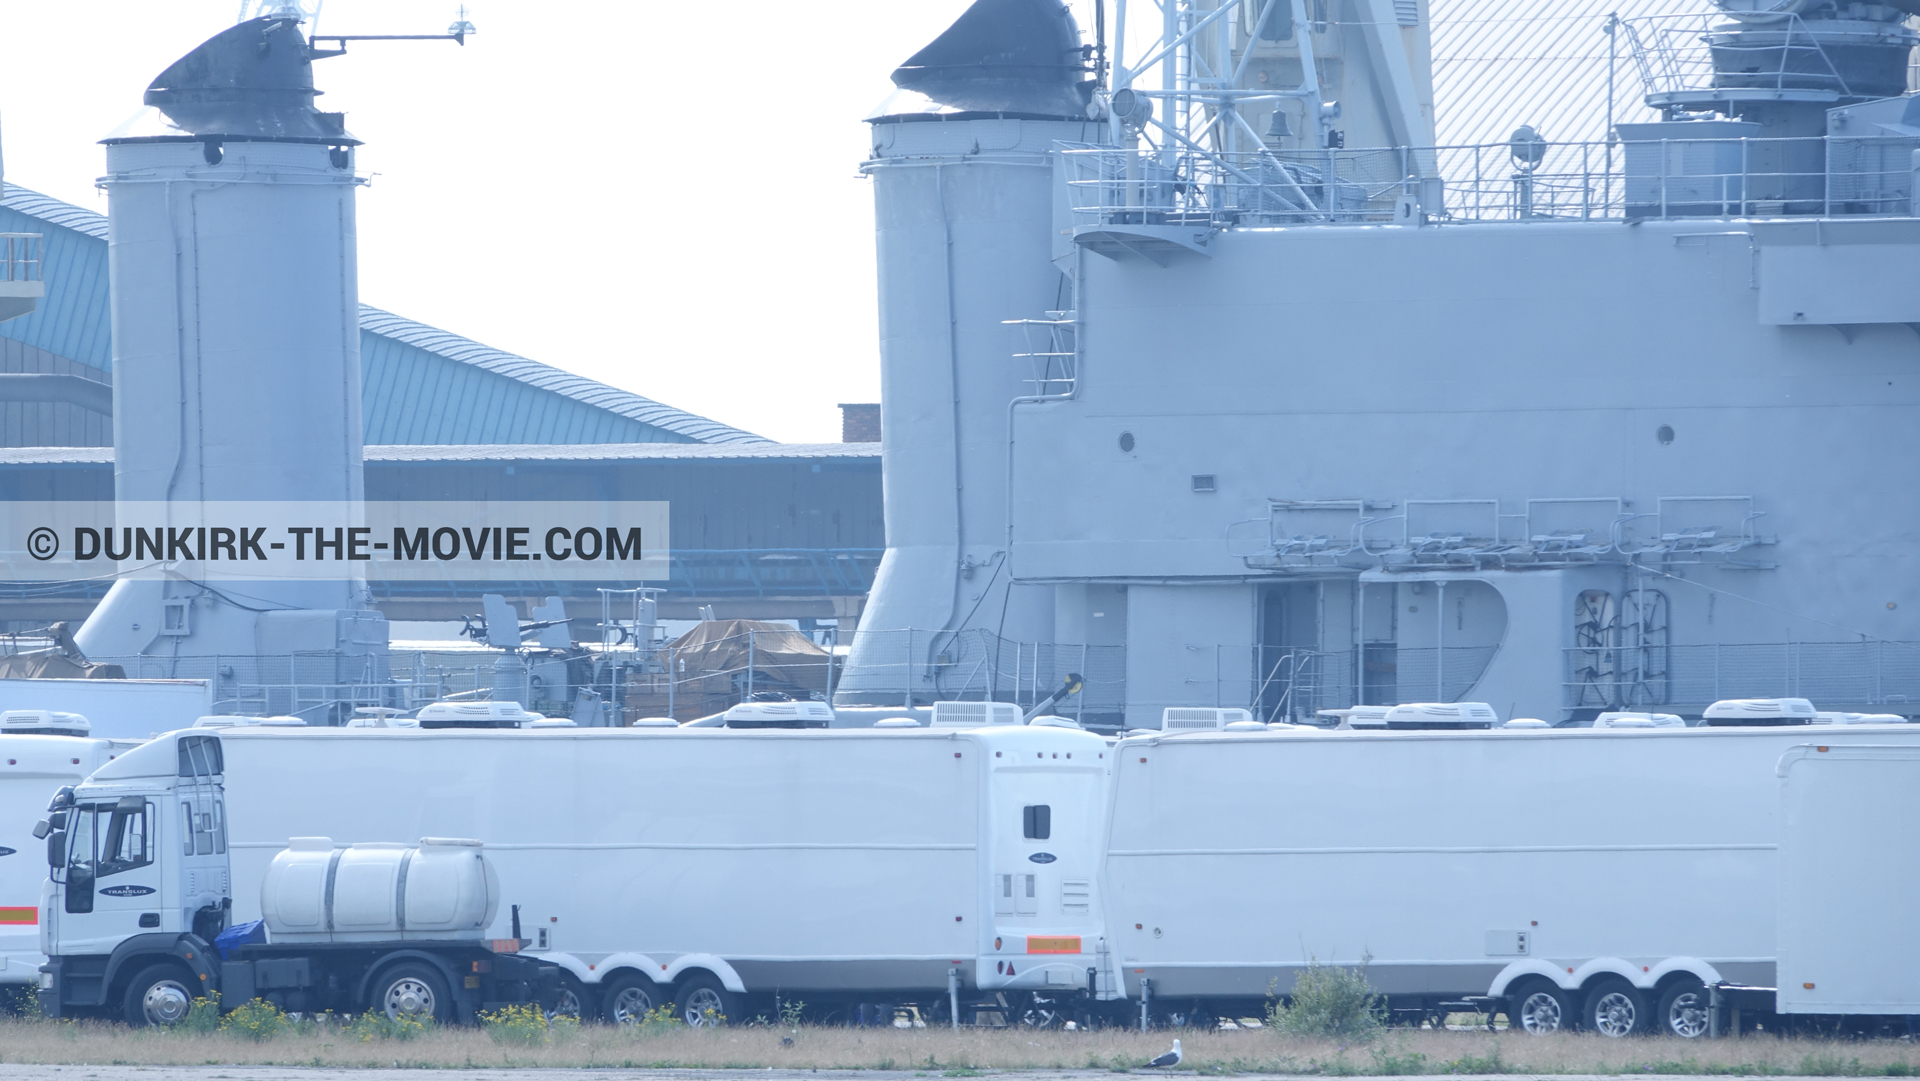 Picture with Maillé-Brézé - D36 - D54,  from behind the scene of the Dunkirk movie by Nolan